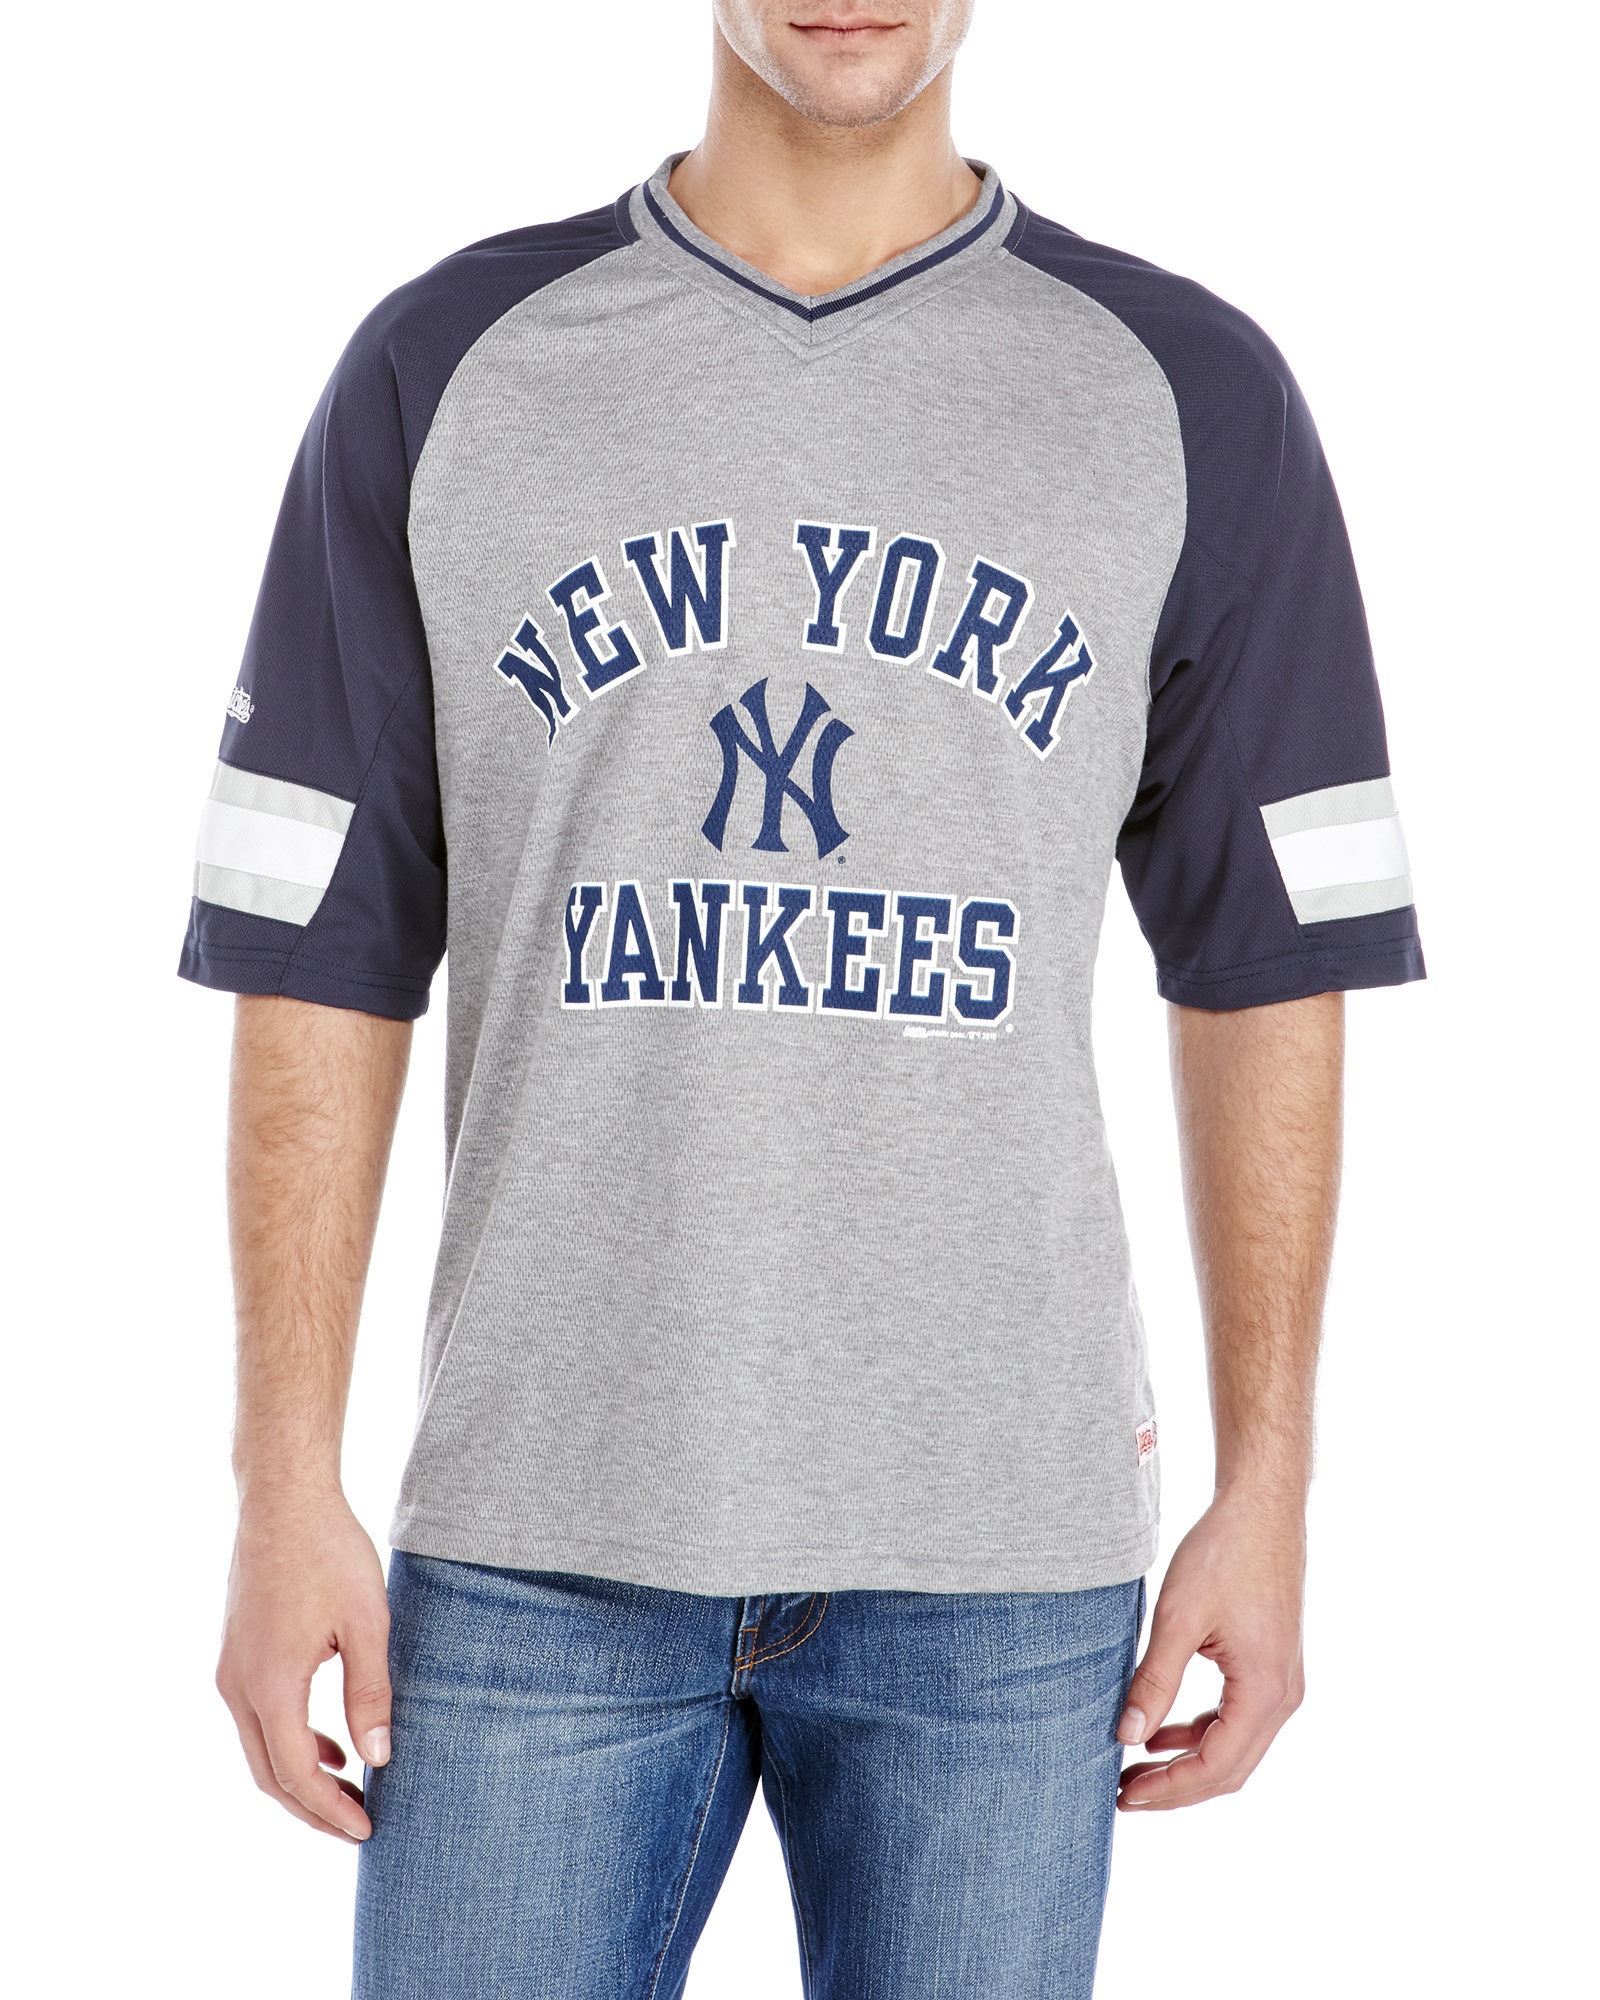 Lyst - Stitches Yankees V-Neck Raglan Tee in Gray for Men 78ded6840d0